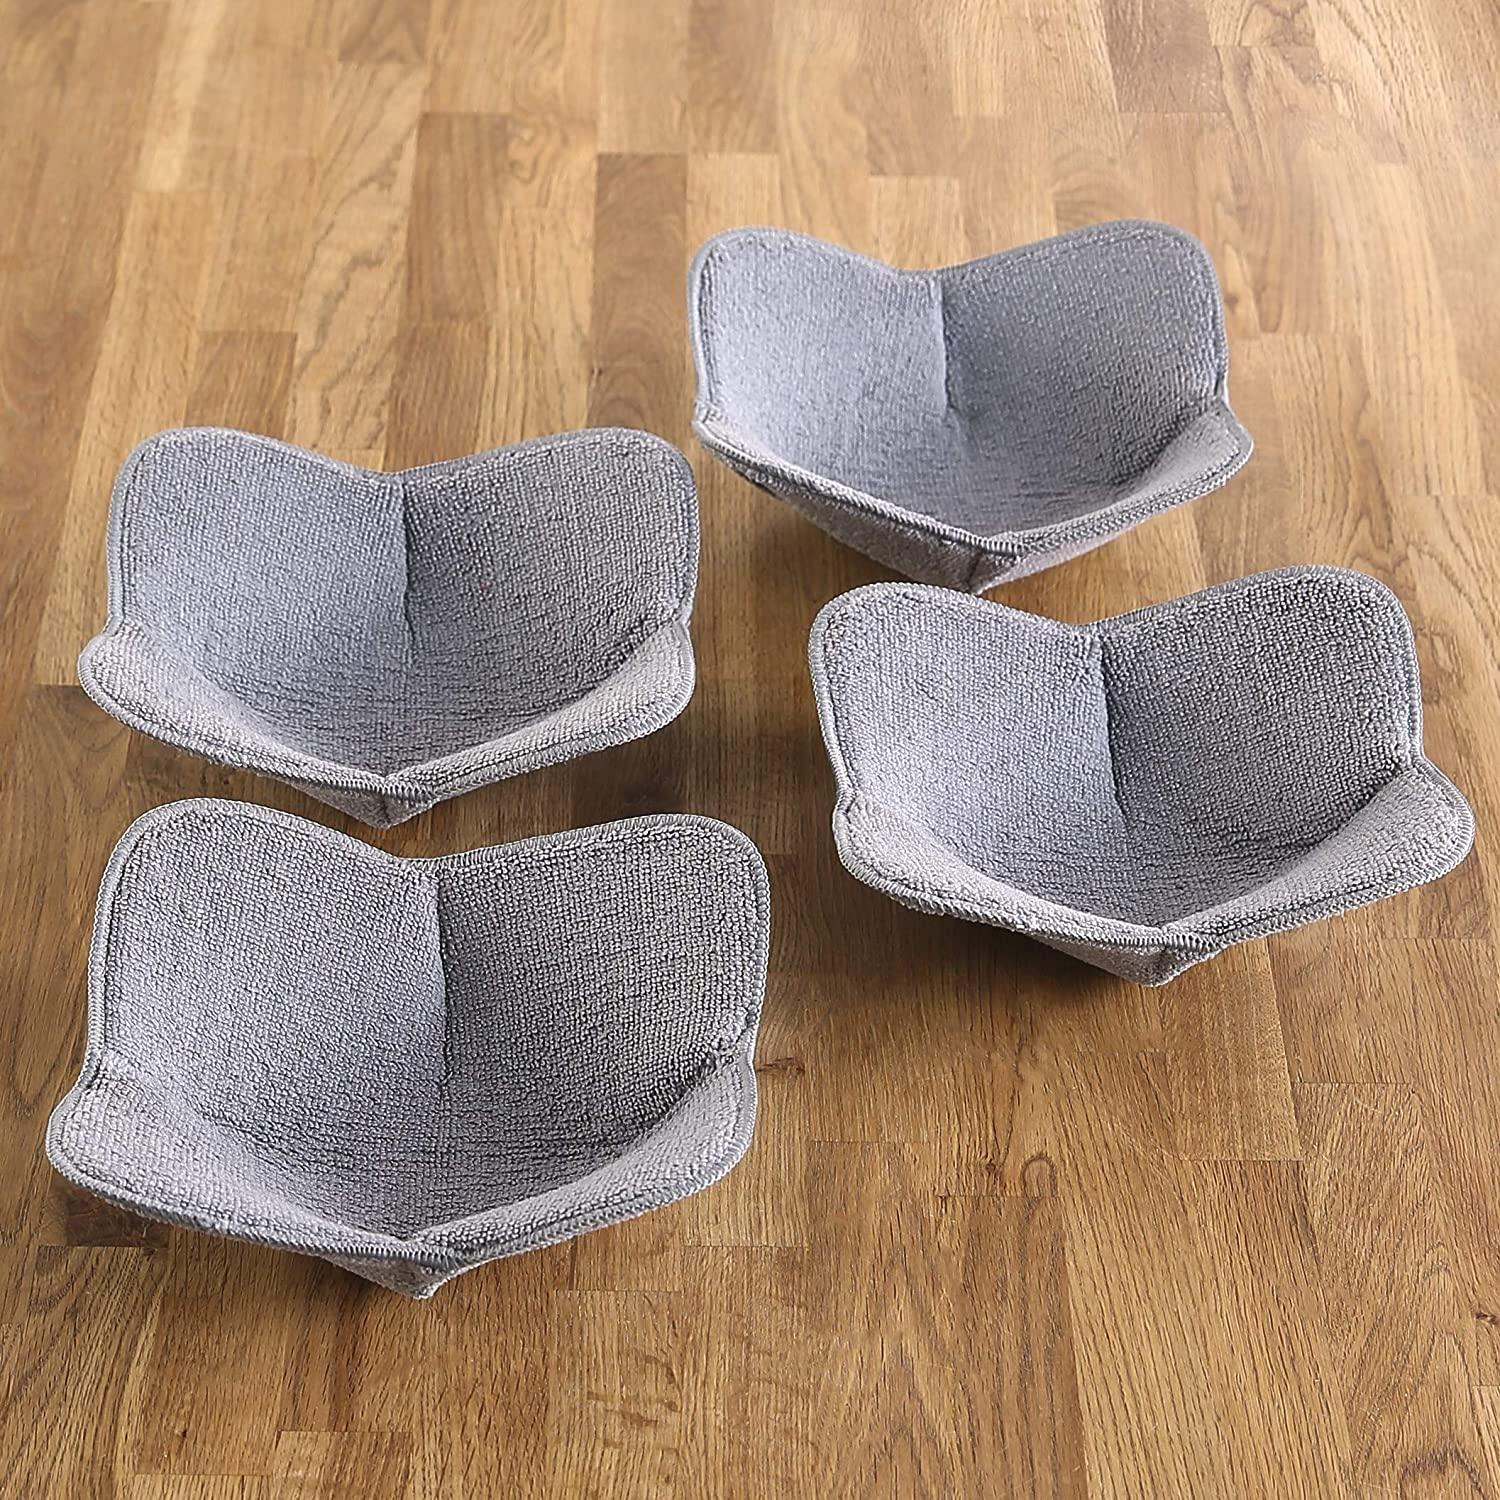 MSR Imports Microwave Bowl Huggers – Hot Pads for Microwaves - Microwave Oven Mitt - Set of 4 - Gray